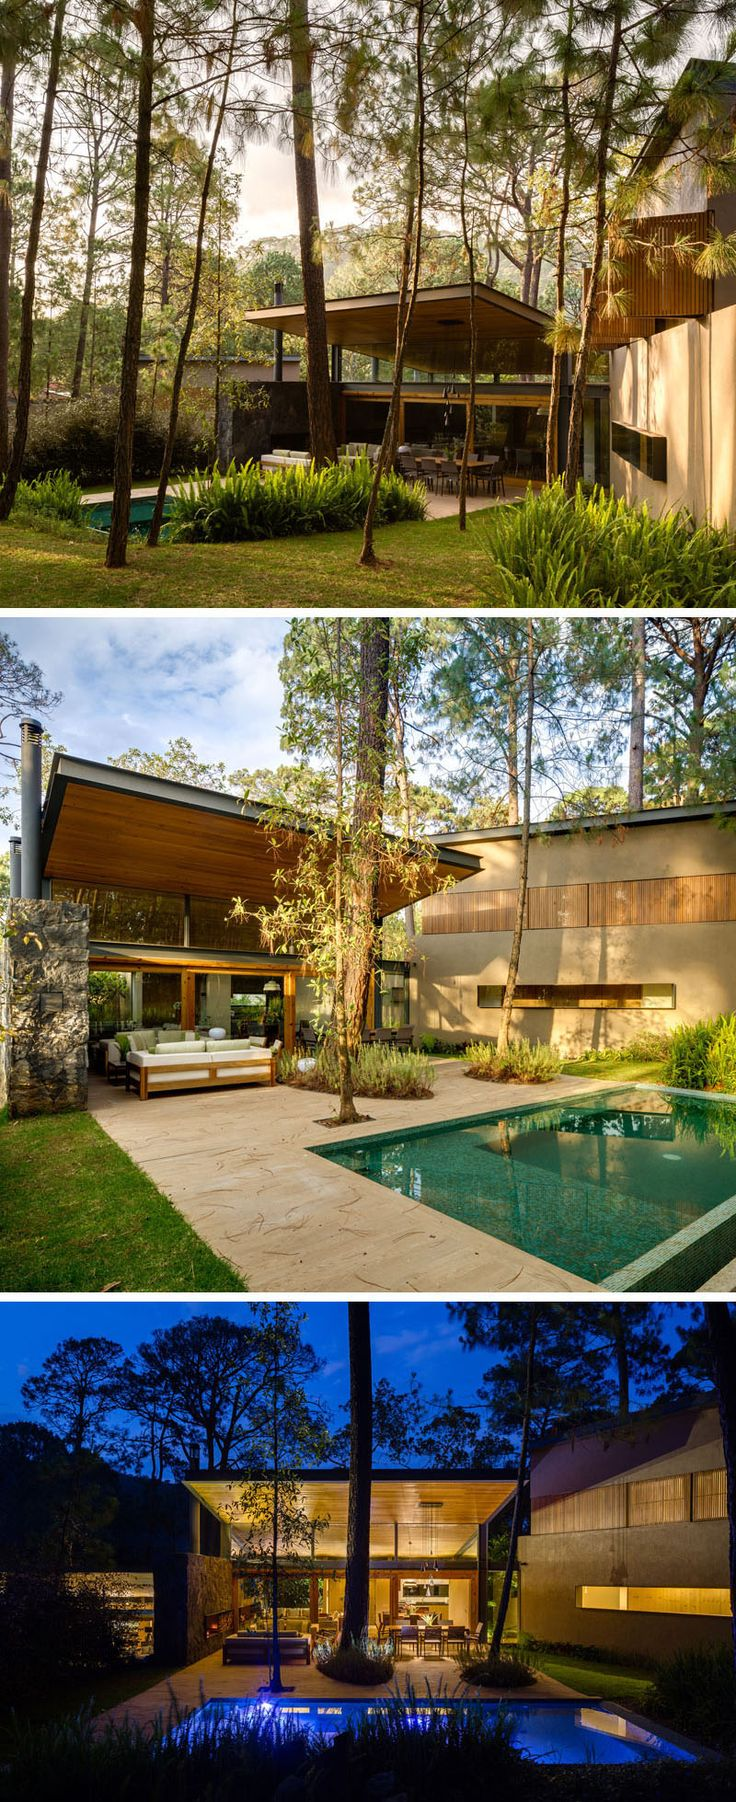 18 Modern House In The Forest // This house was part of a development designed to work with the environment instead of against it and to compliment the surrounding forest vegetation.